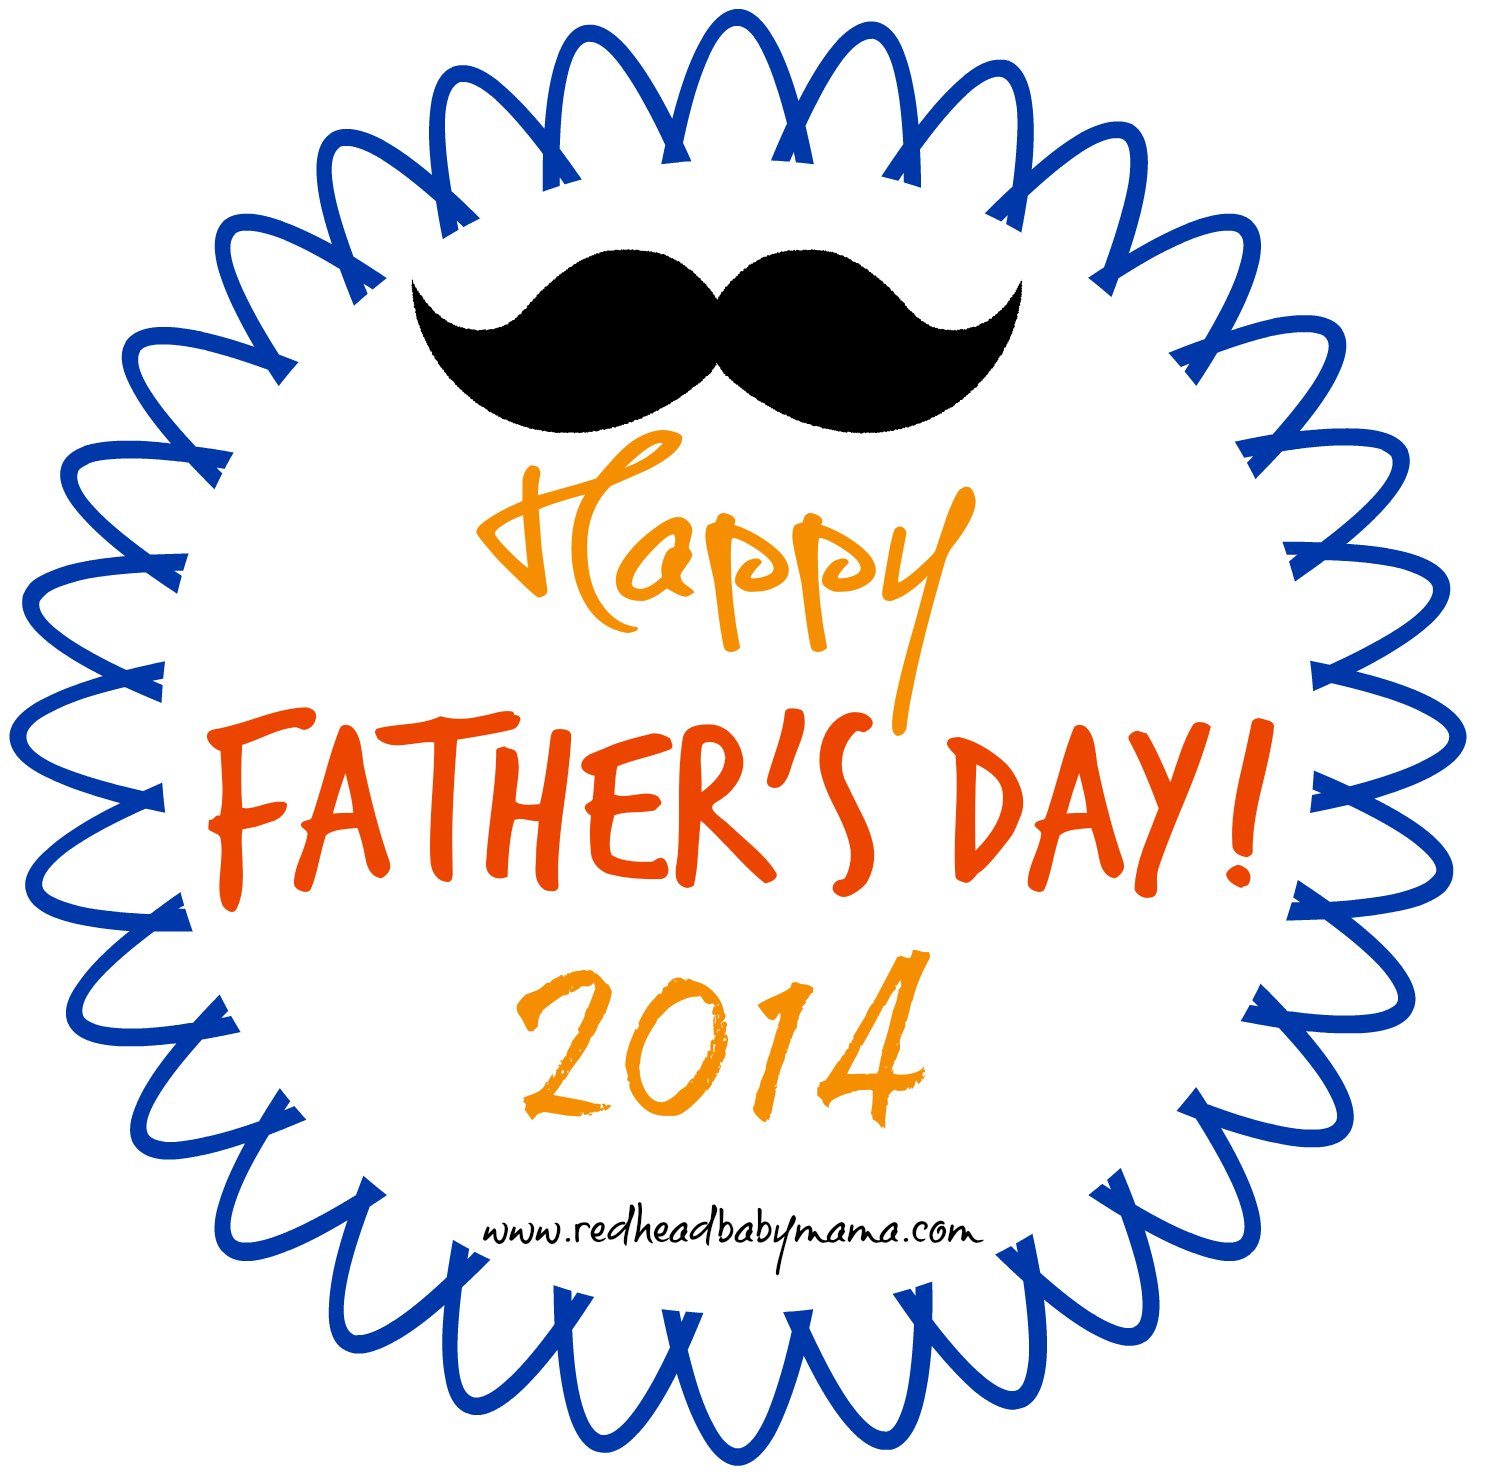 Happy Fathers Day! 2014 - Redhead Baby Mama | Atlanta Blogger